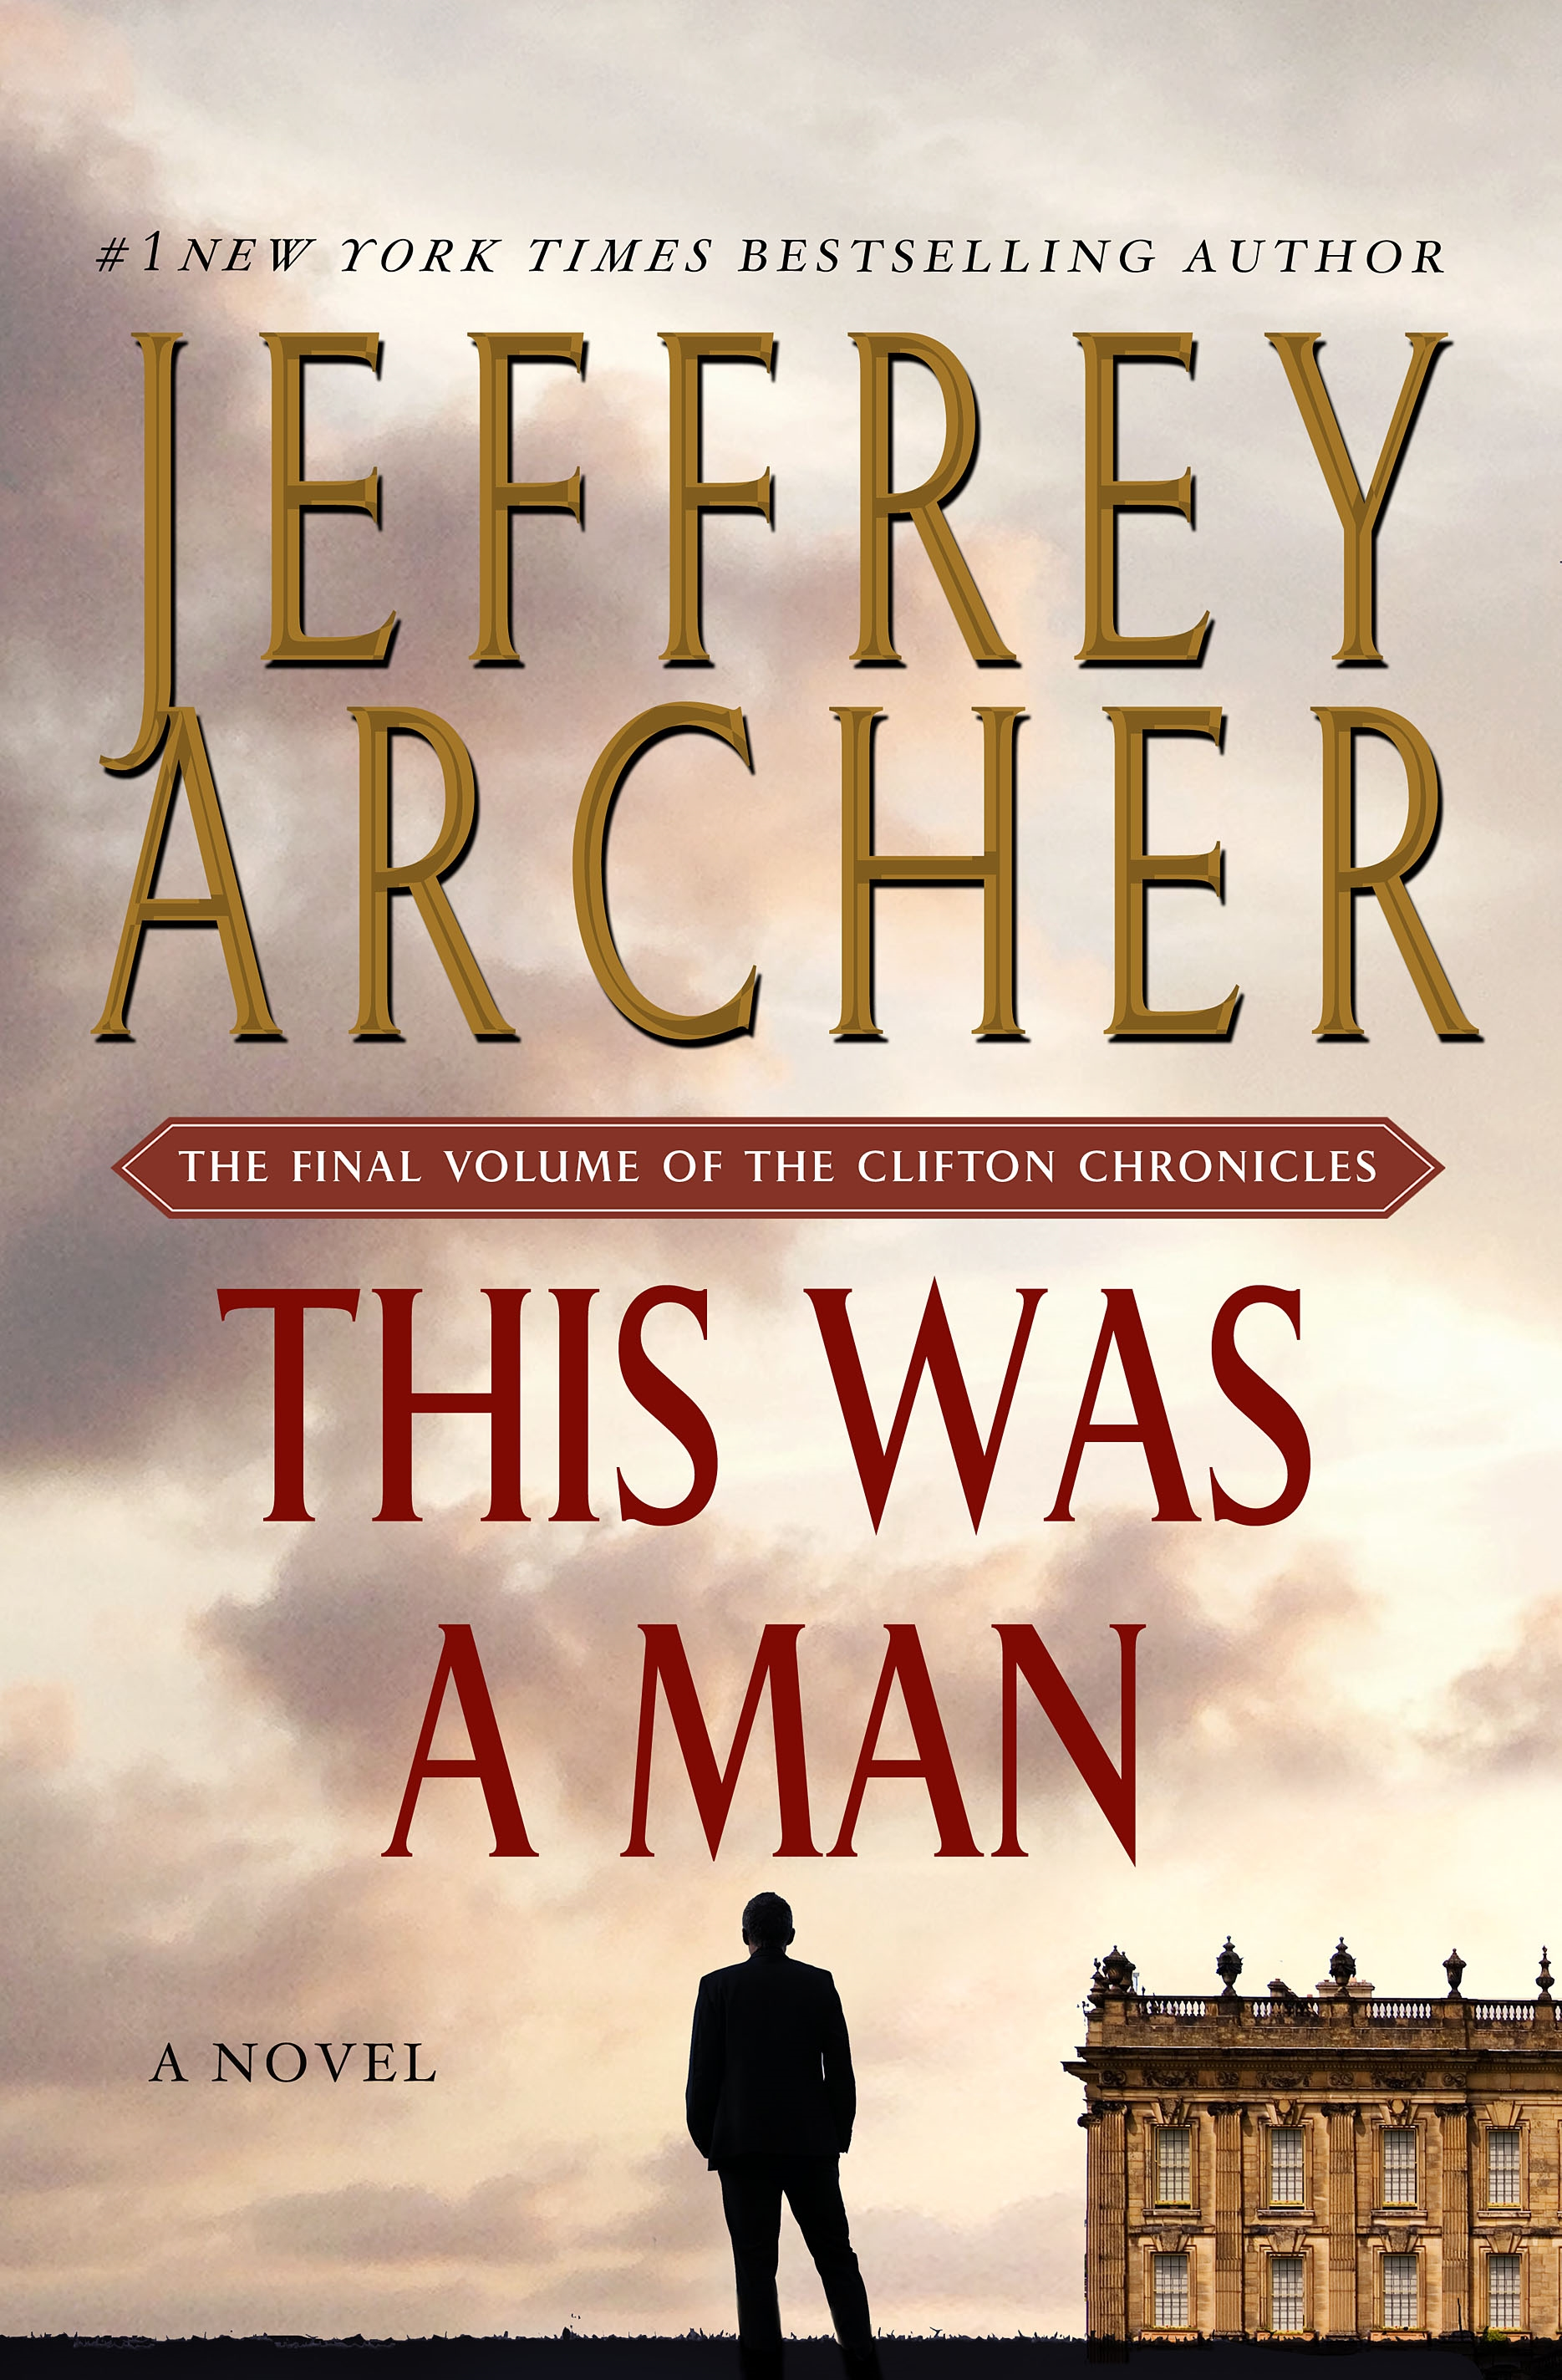 This was a man : the final volume of the Clifton Chronicles